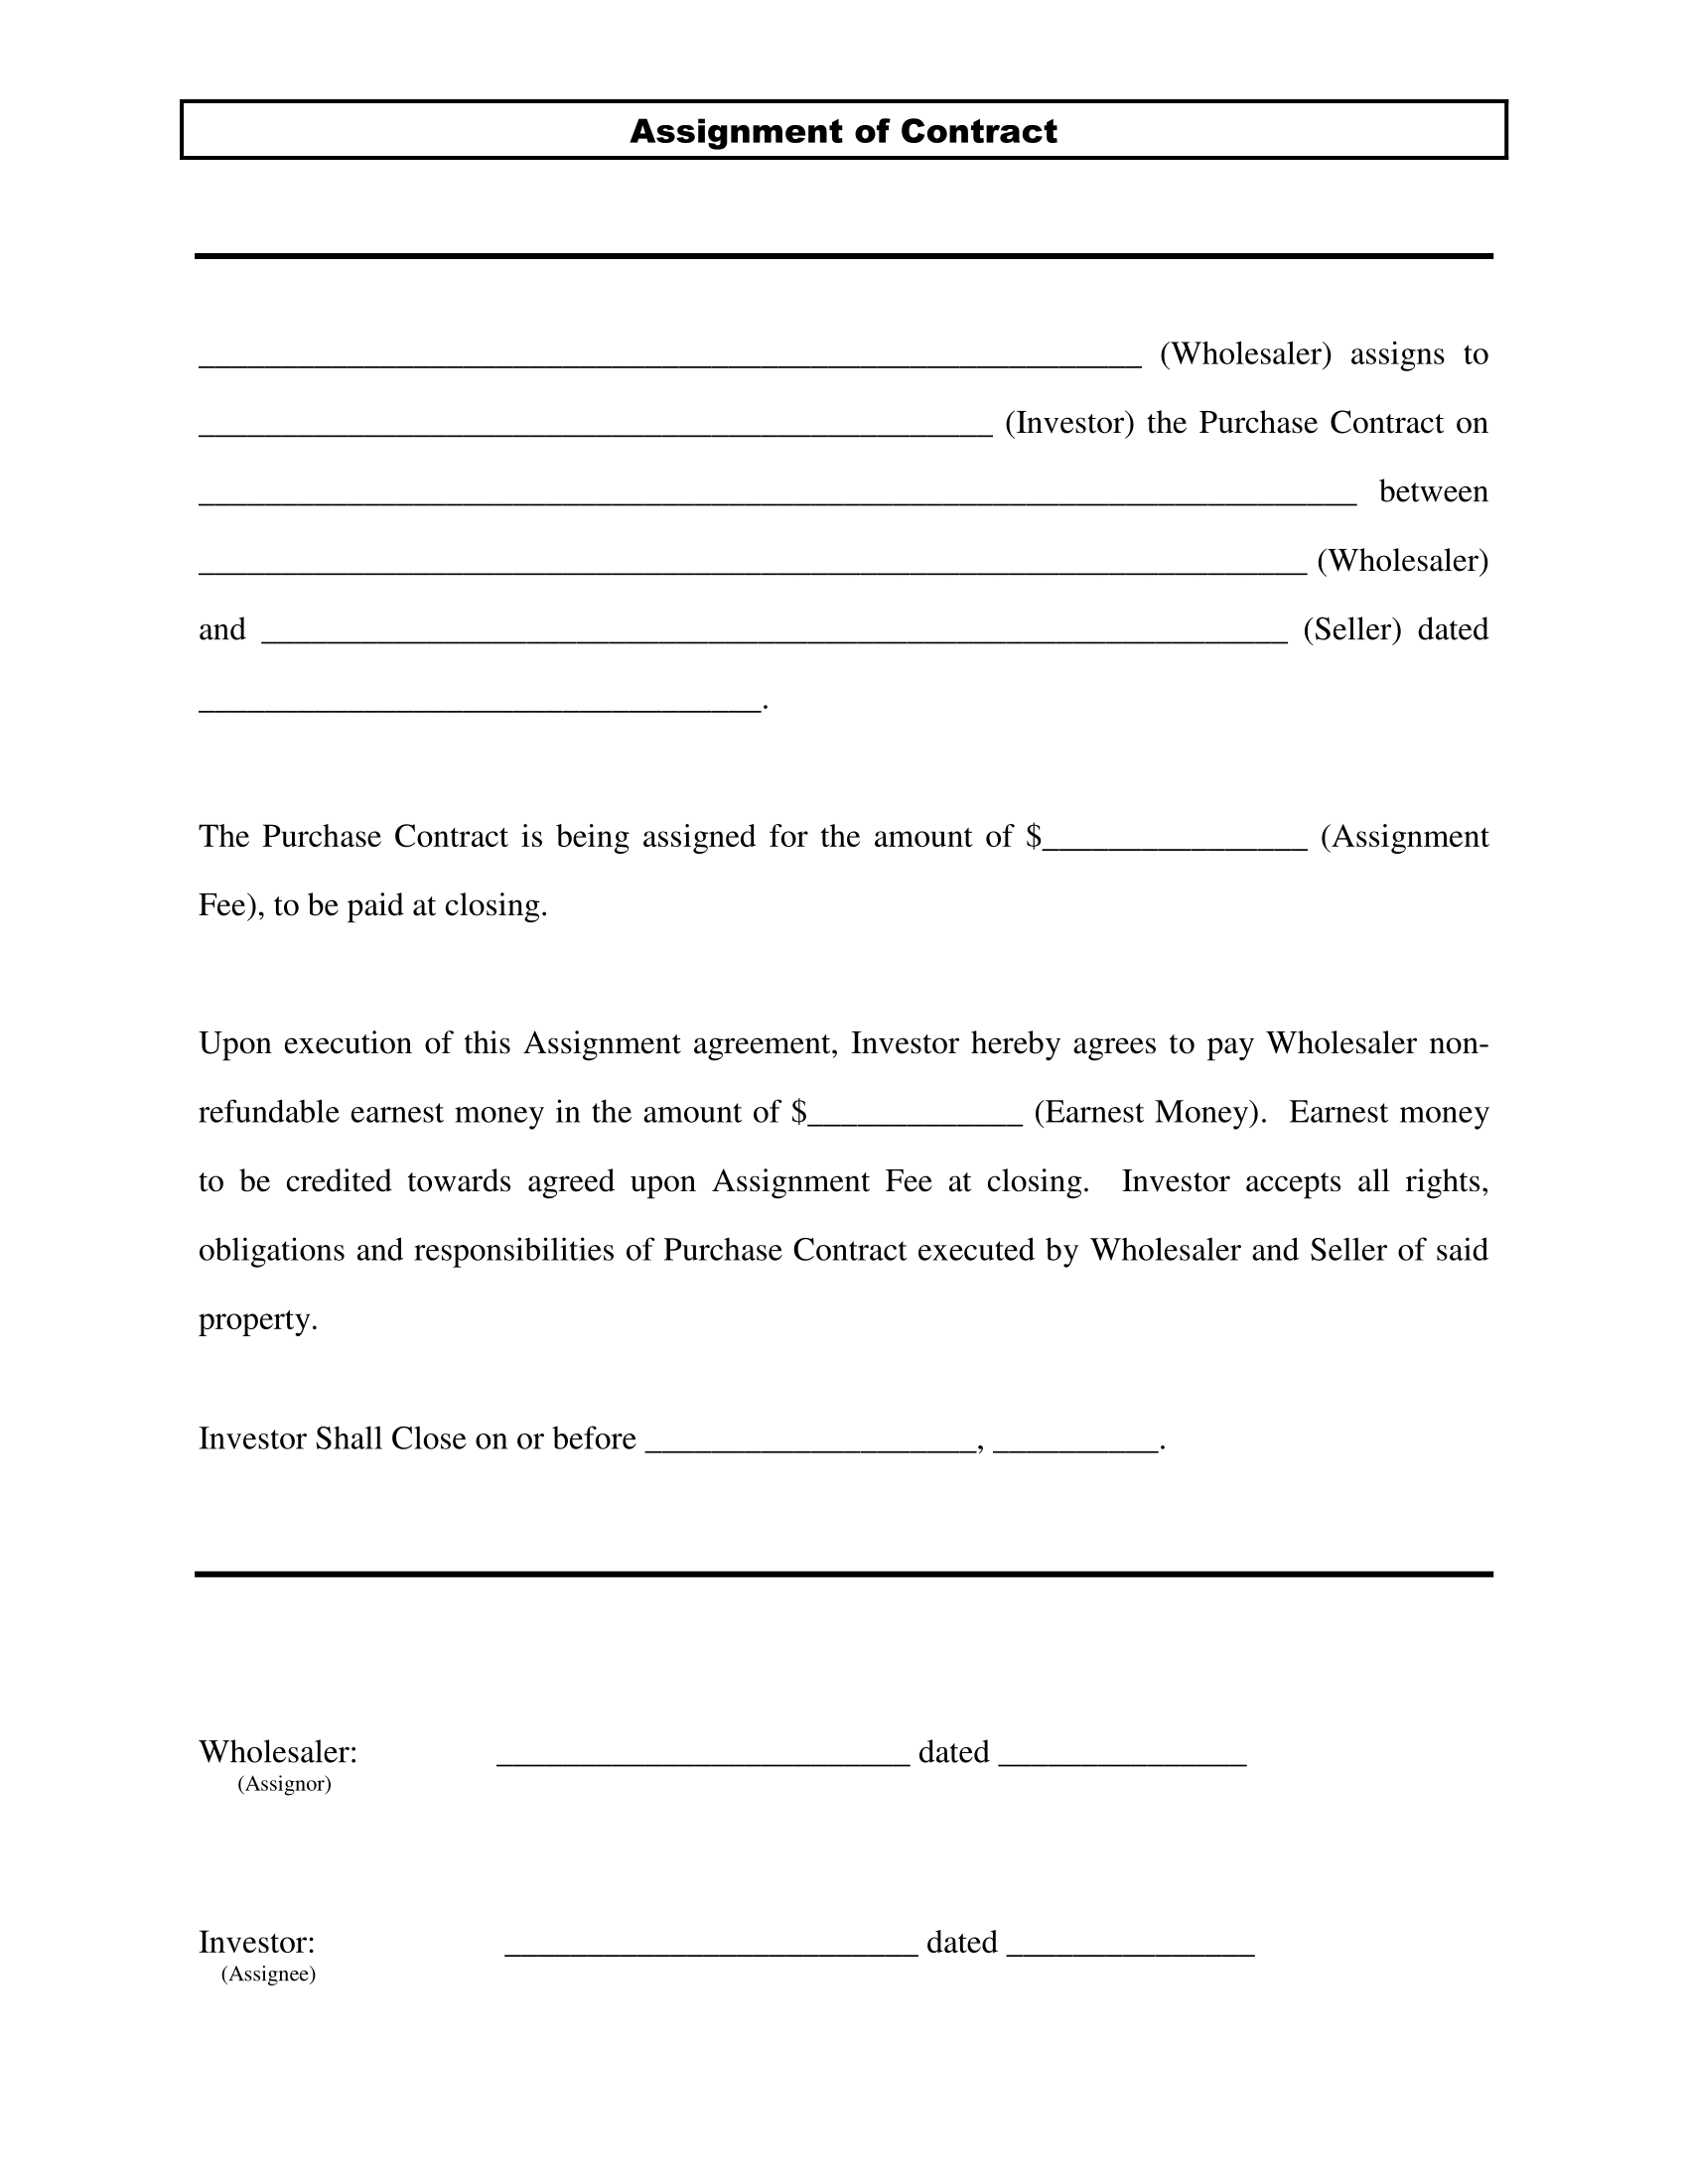 wholesale real estate assignment contract 1